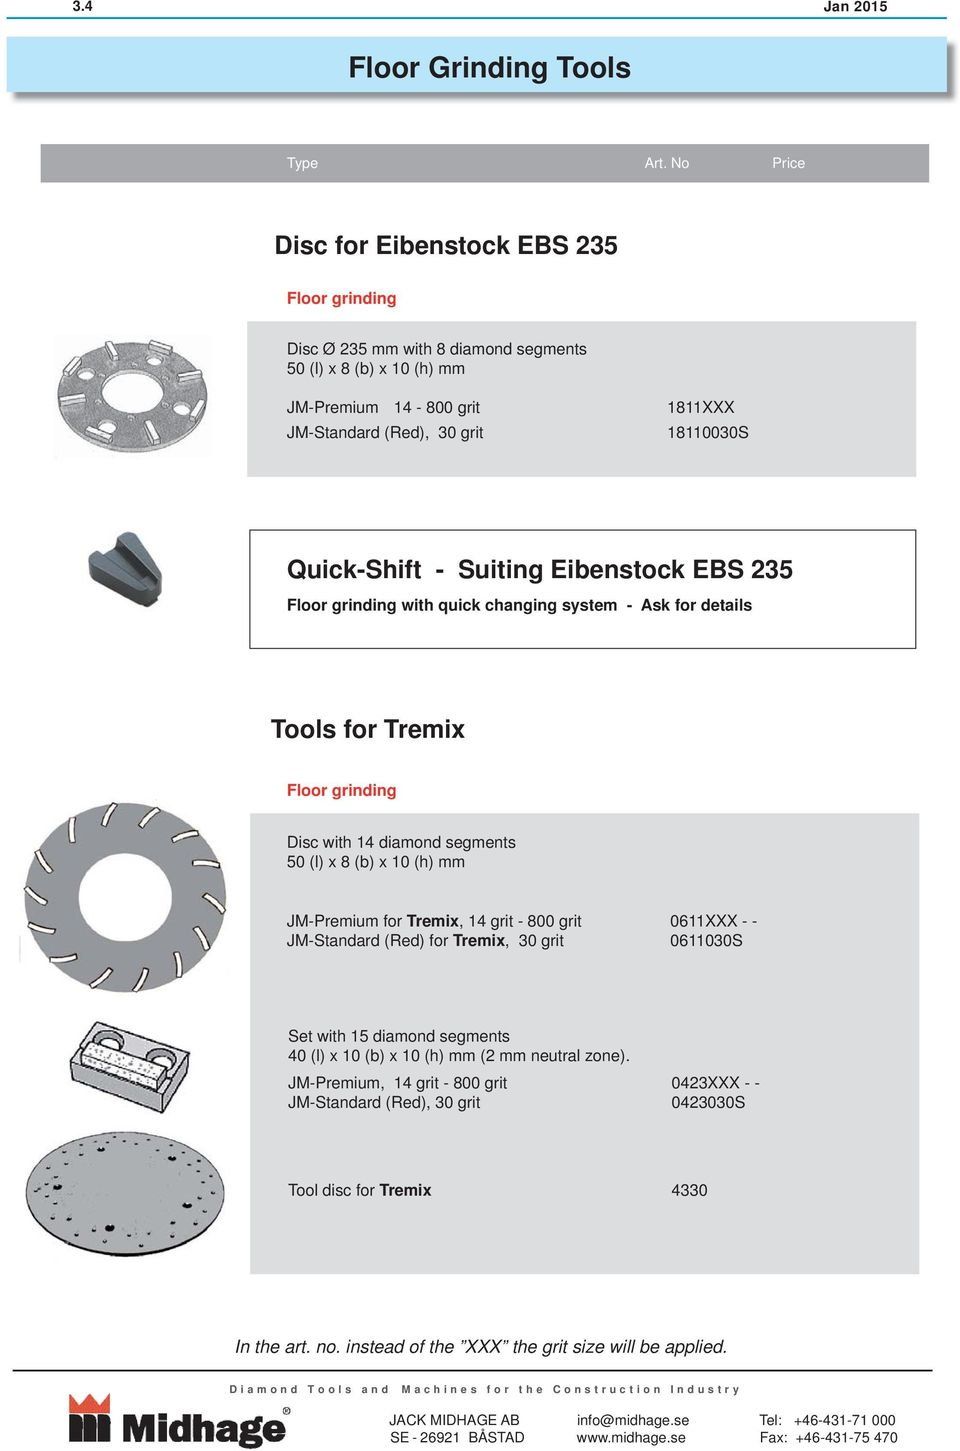 Quick-Shift - Suiting Eibenstock EBS 235 with quick changing system - Ask for details Tools for Tremix Disc with 14 diamond segments 50 (l) x 8 (b) x 10 (h) mm JM-Premium for